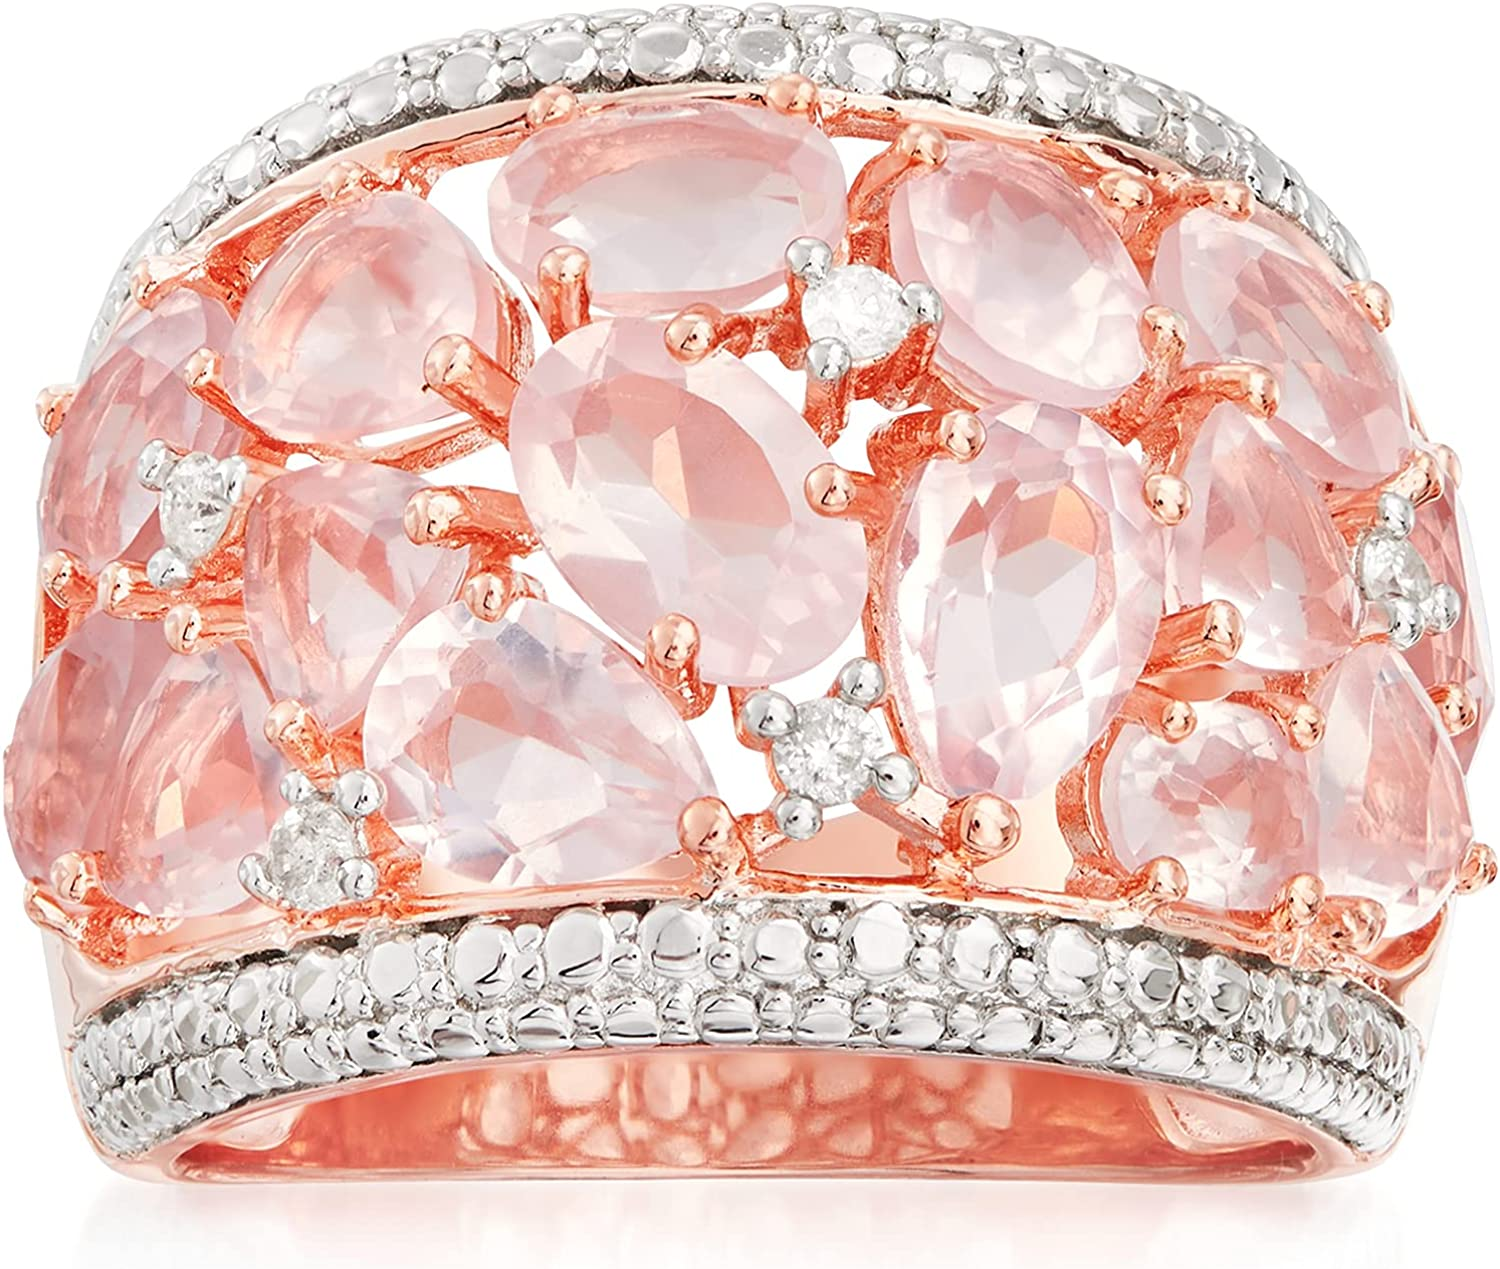 Ross-Simons 5.95 Max 89% OFF ct. t.w. Rose Quartz SALENEW very popular With Ring Dome in Diamonds